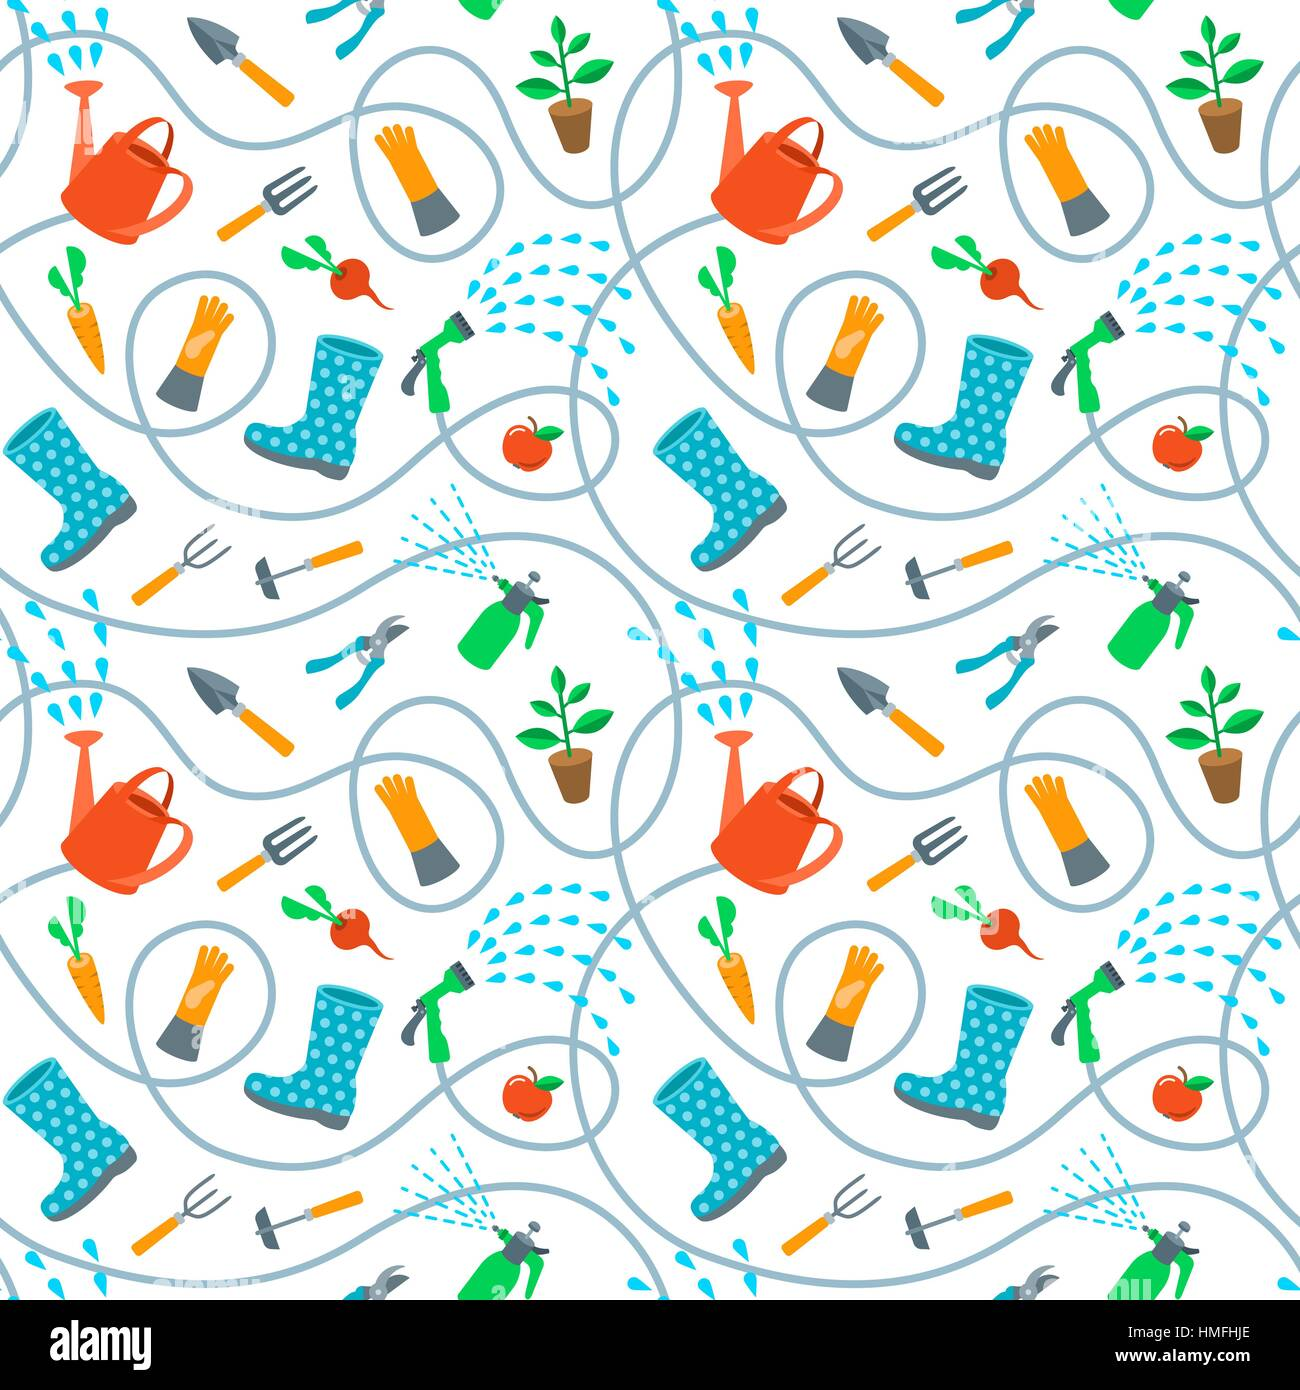 Gardening Tools And Fruits Flat Seamless Pattern. Cute Cartoon Repeating  Endless Background With Scattered Colorful